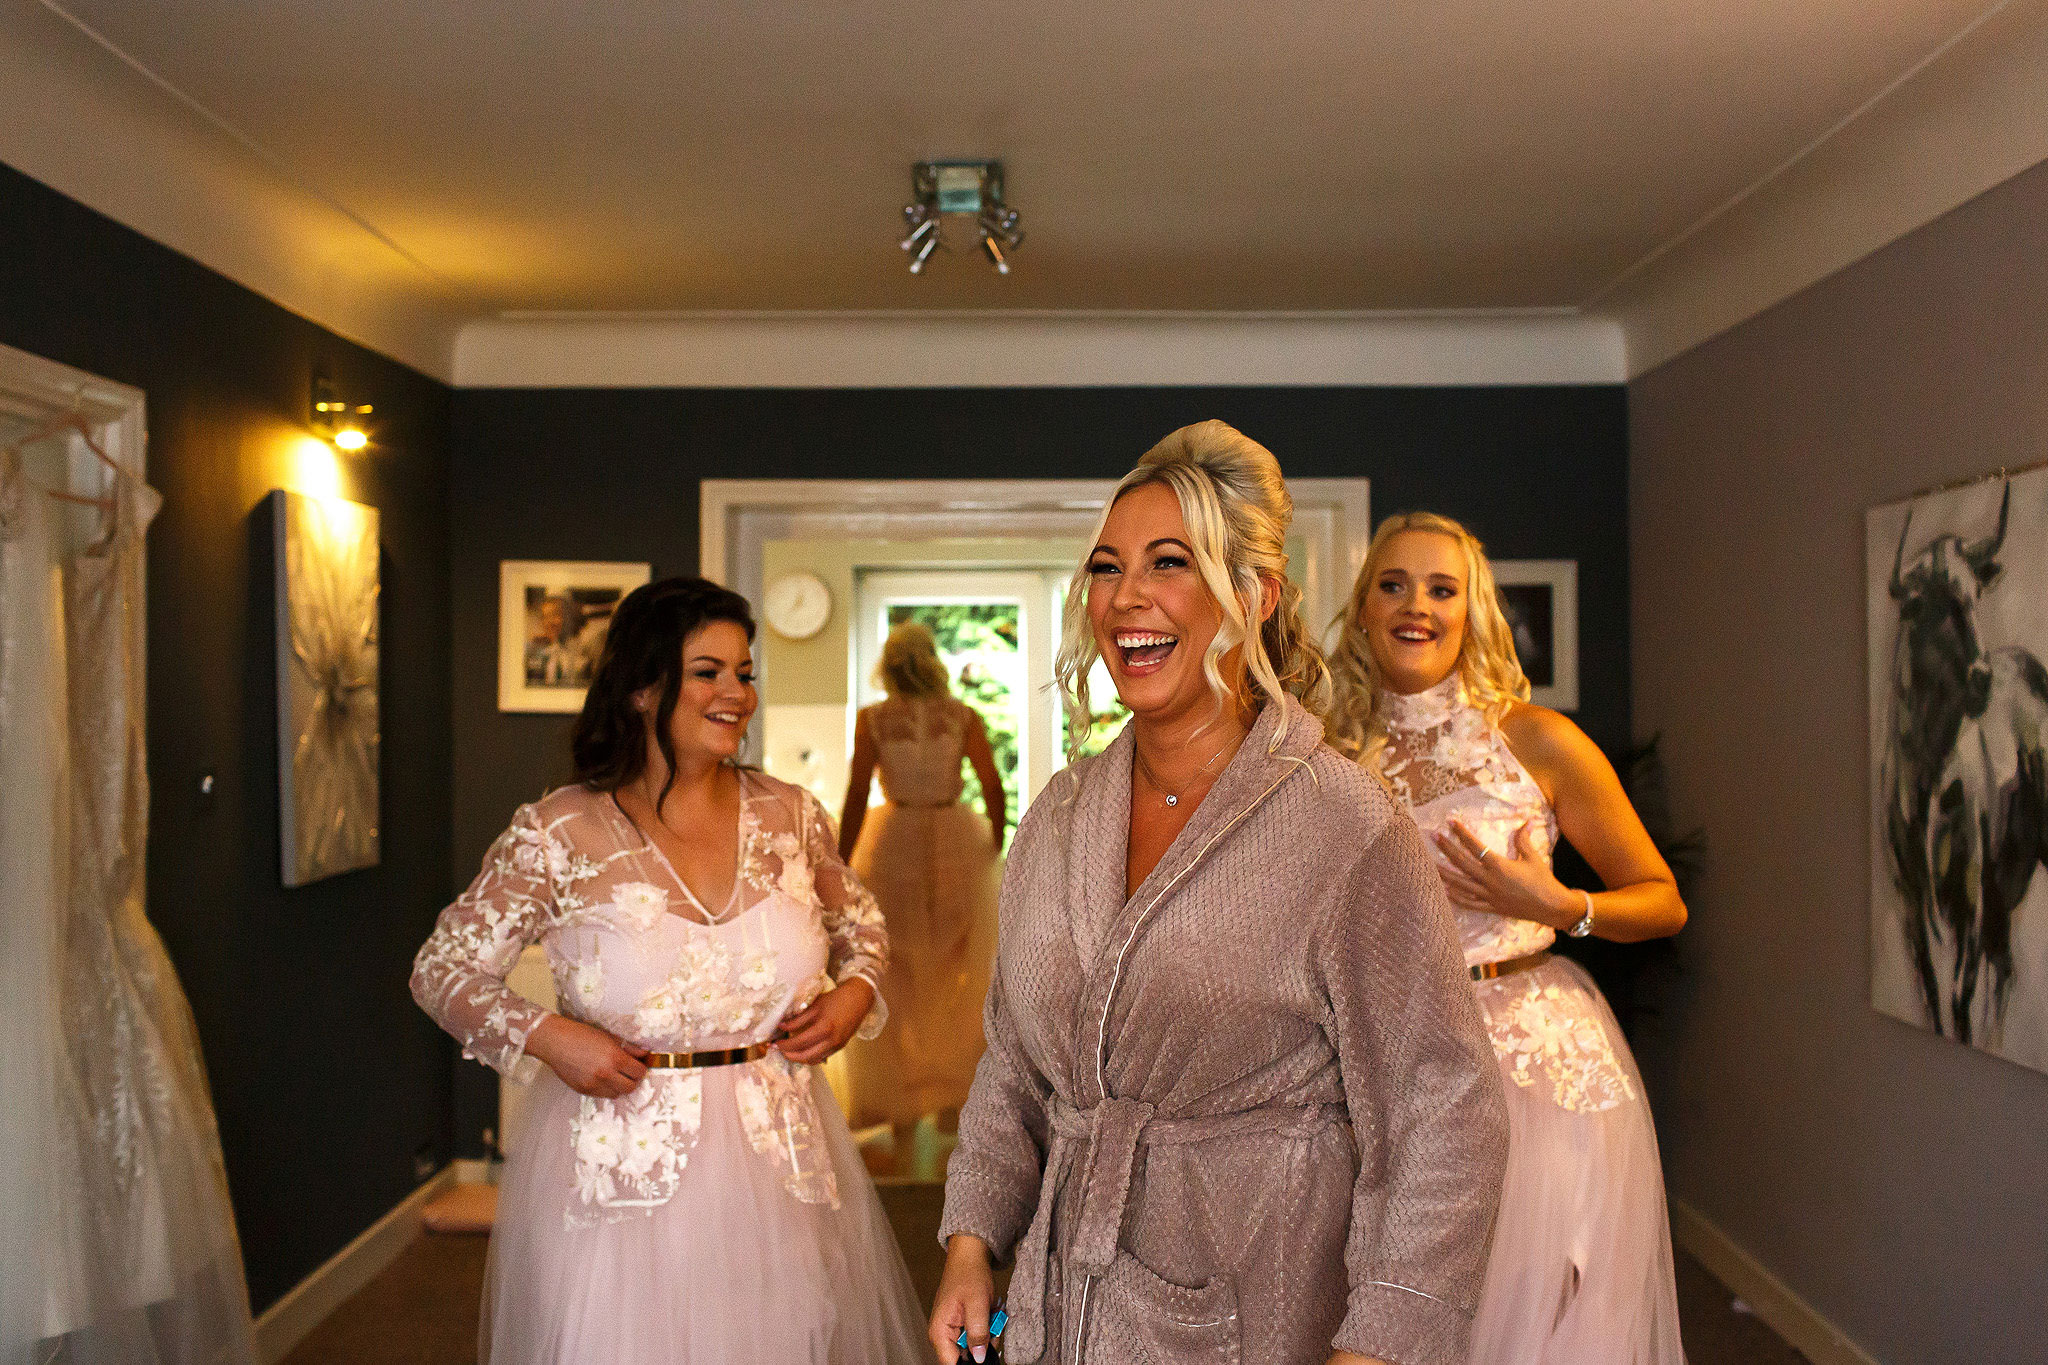 Bride with blonde hair laughing as she looks out the window with bridesmaids behind her